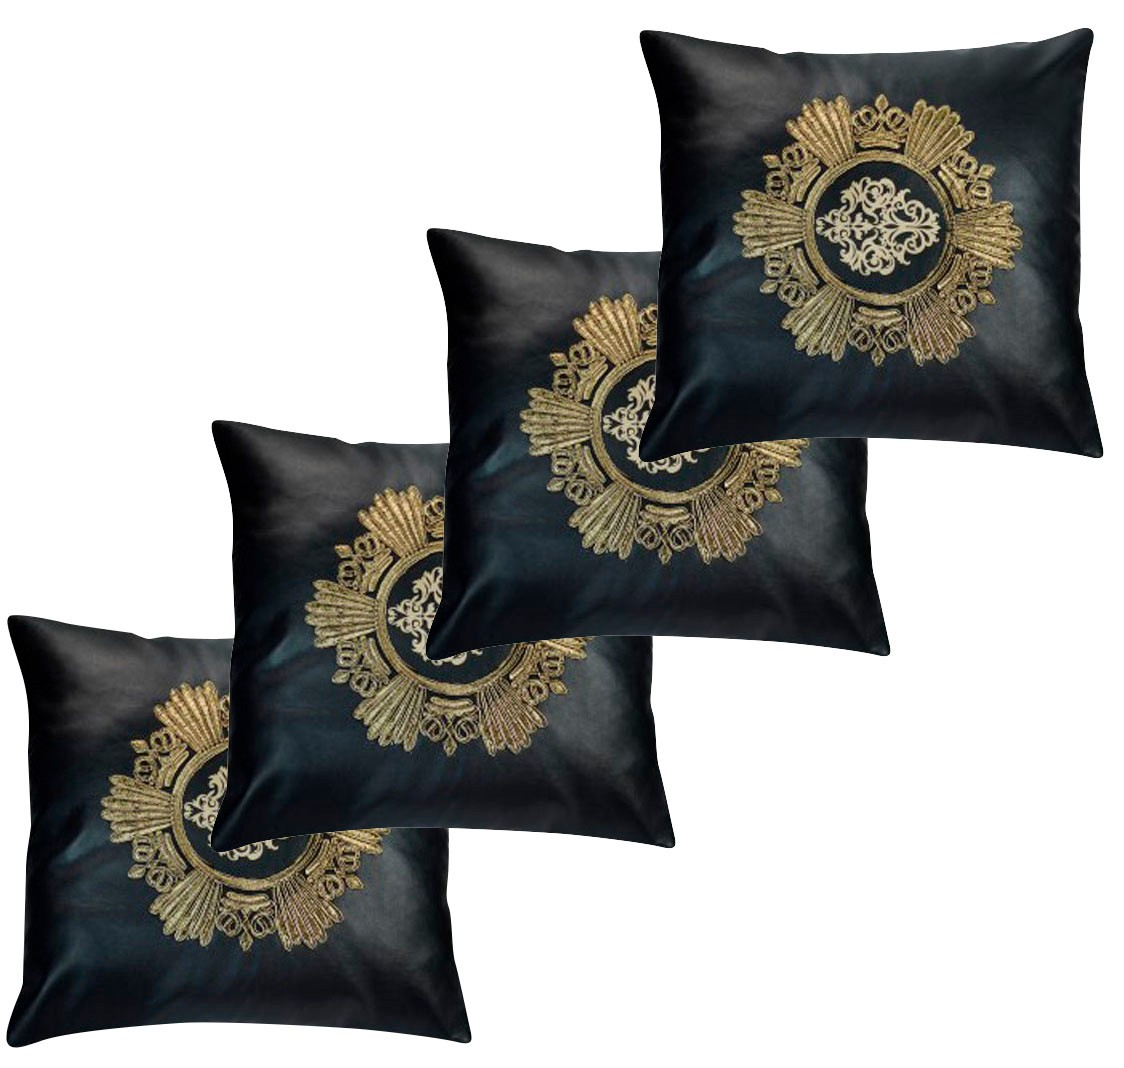 Ashleys Furniture Killeen Tx: Signature Design By Ashley Killeen Pillow In Onyx (Set Of 4